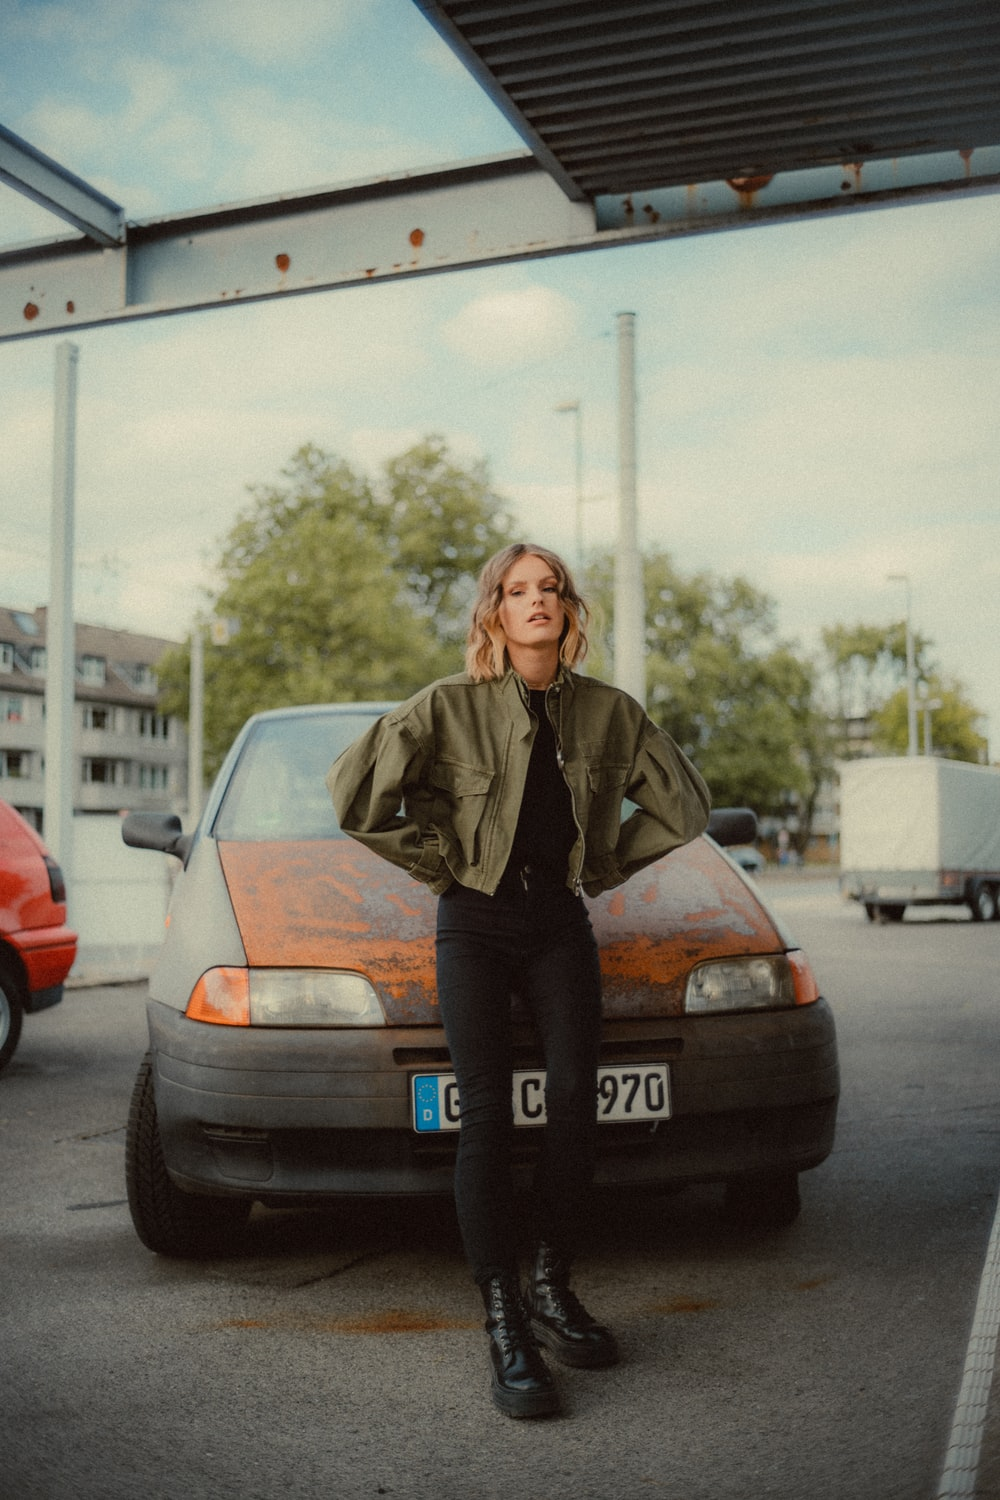 woman in brown jacket standing beside blue car during daytime